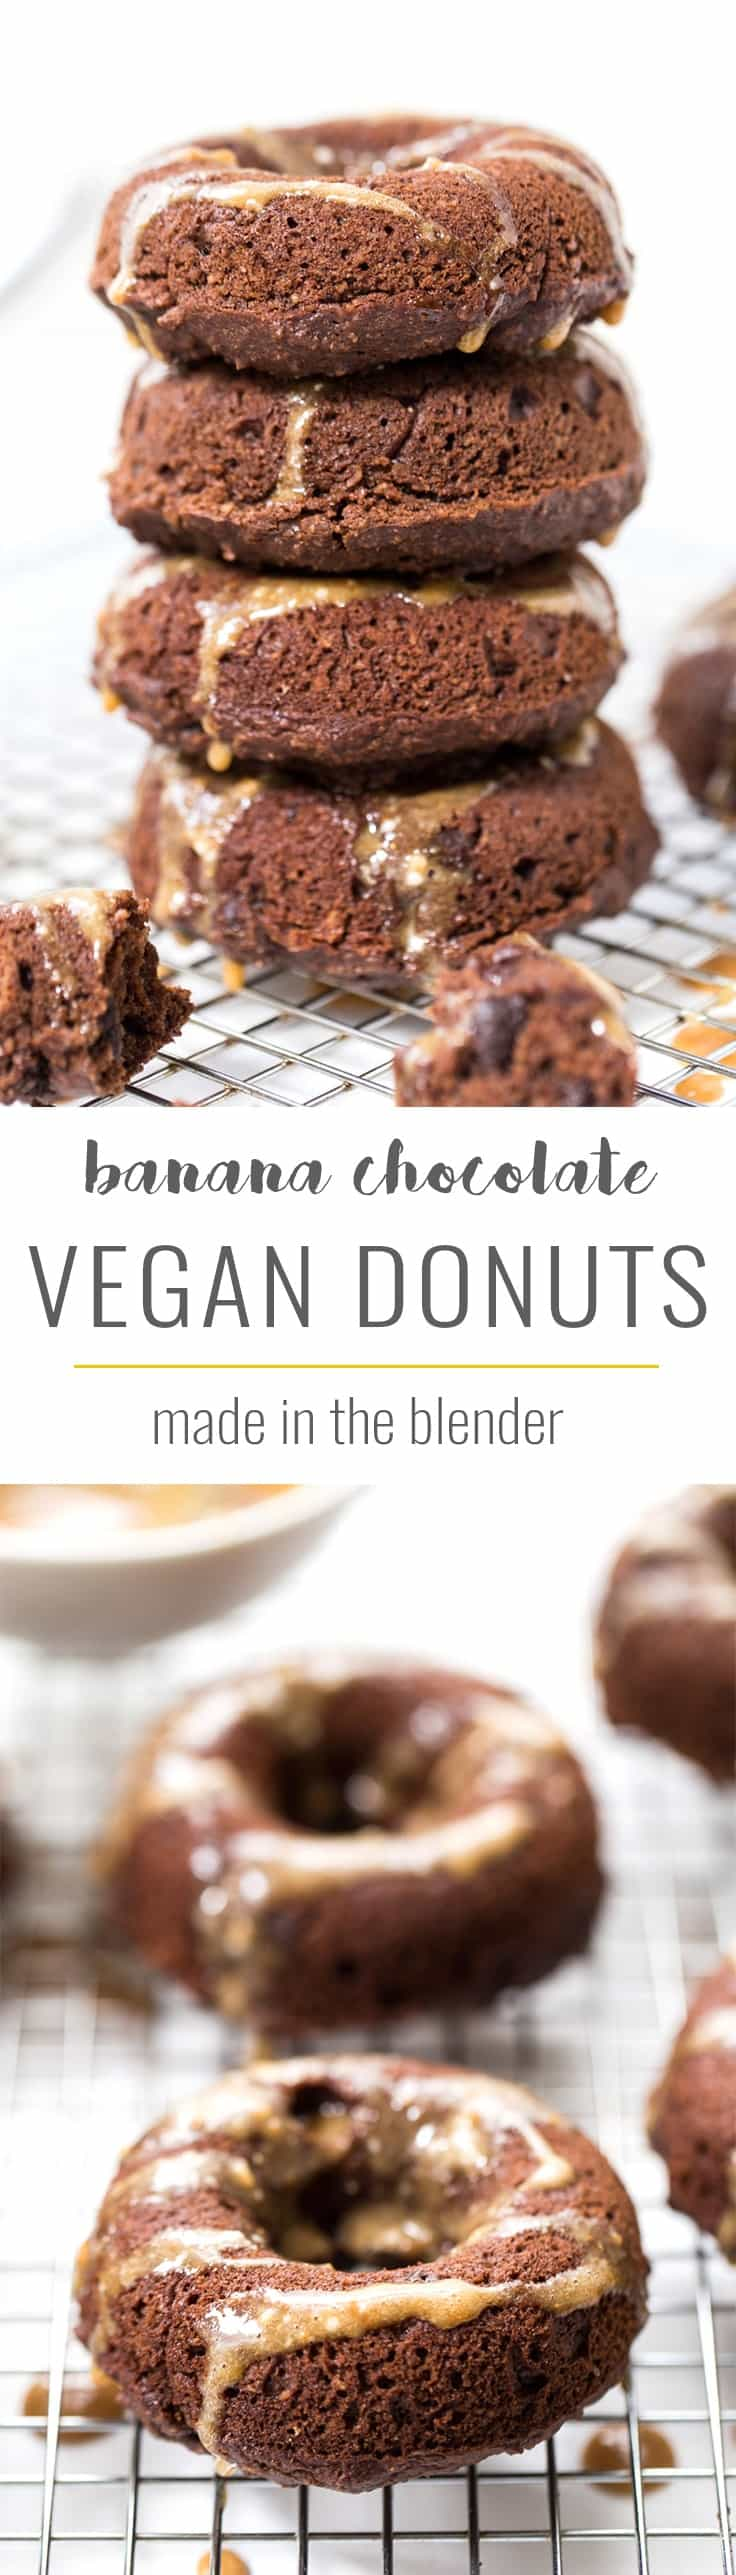 Vegan Banana Chocolate Donuts made in the BLENDER! packed with healthy ingredients, ready in just 15 minutes and seriously delicious! [vegan]